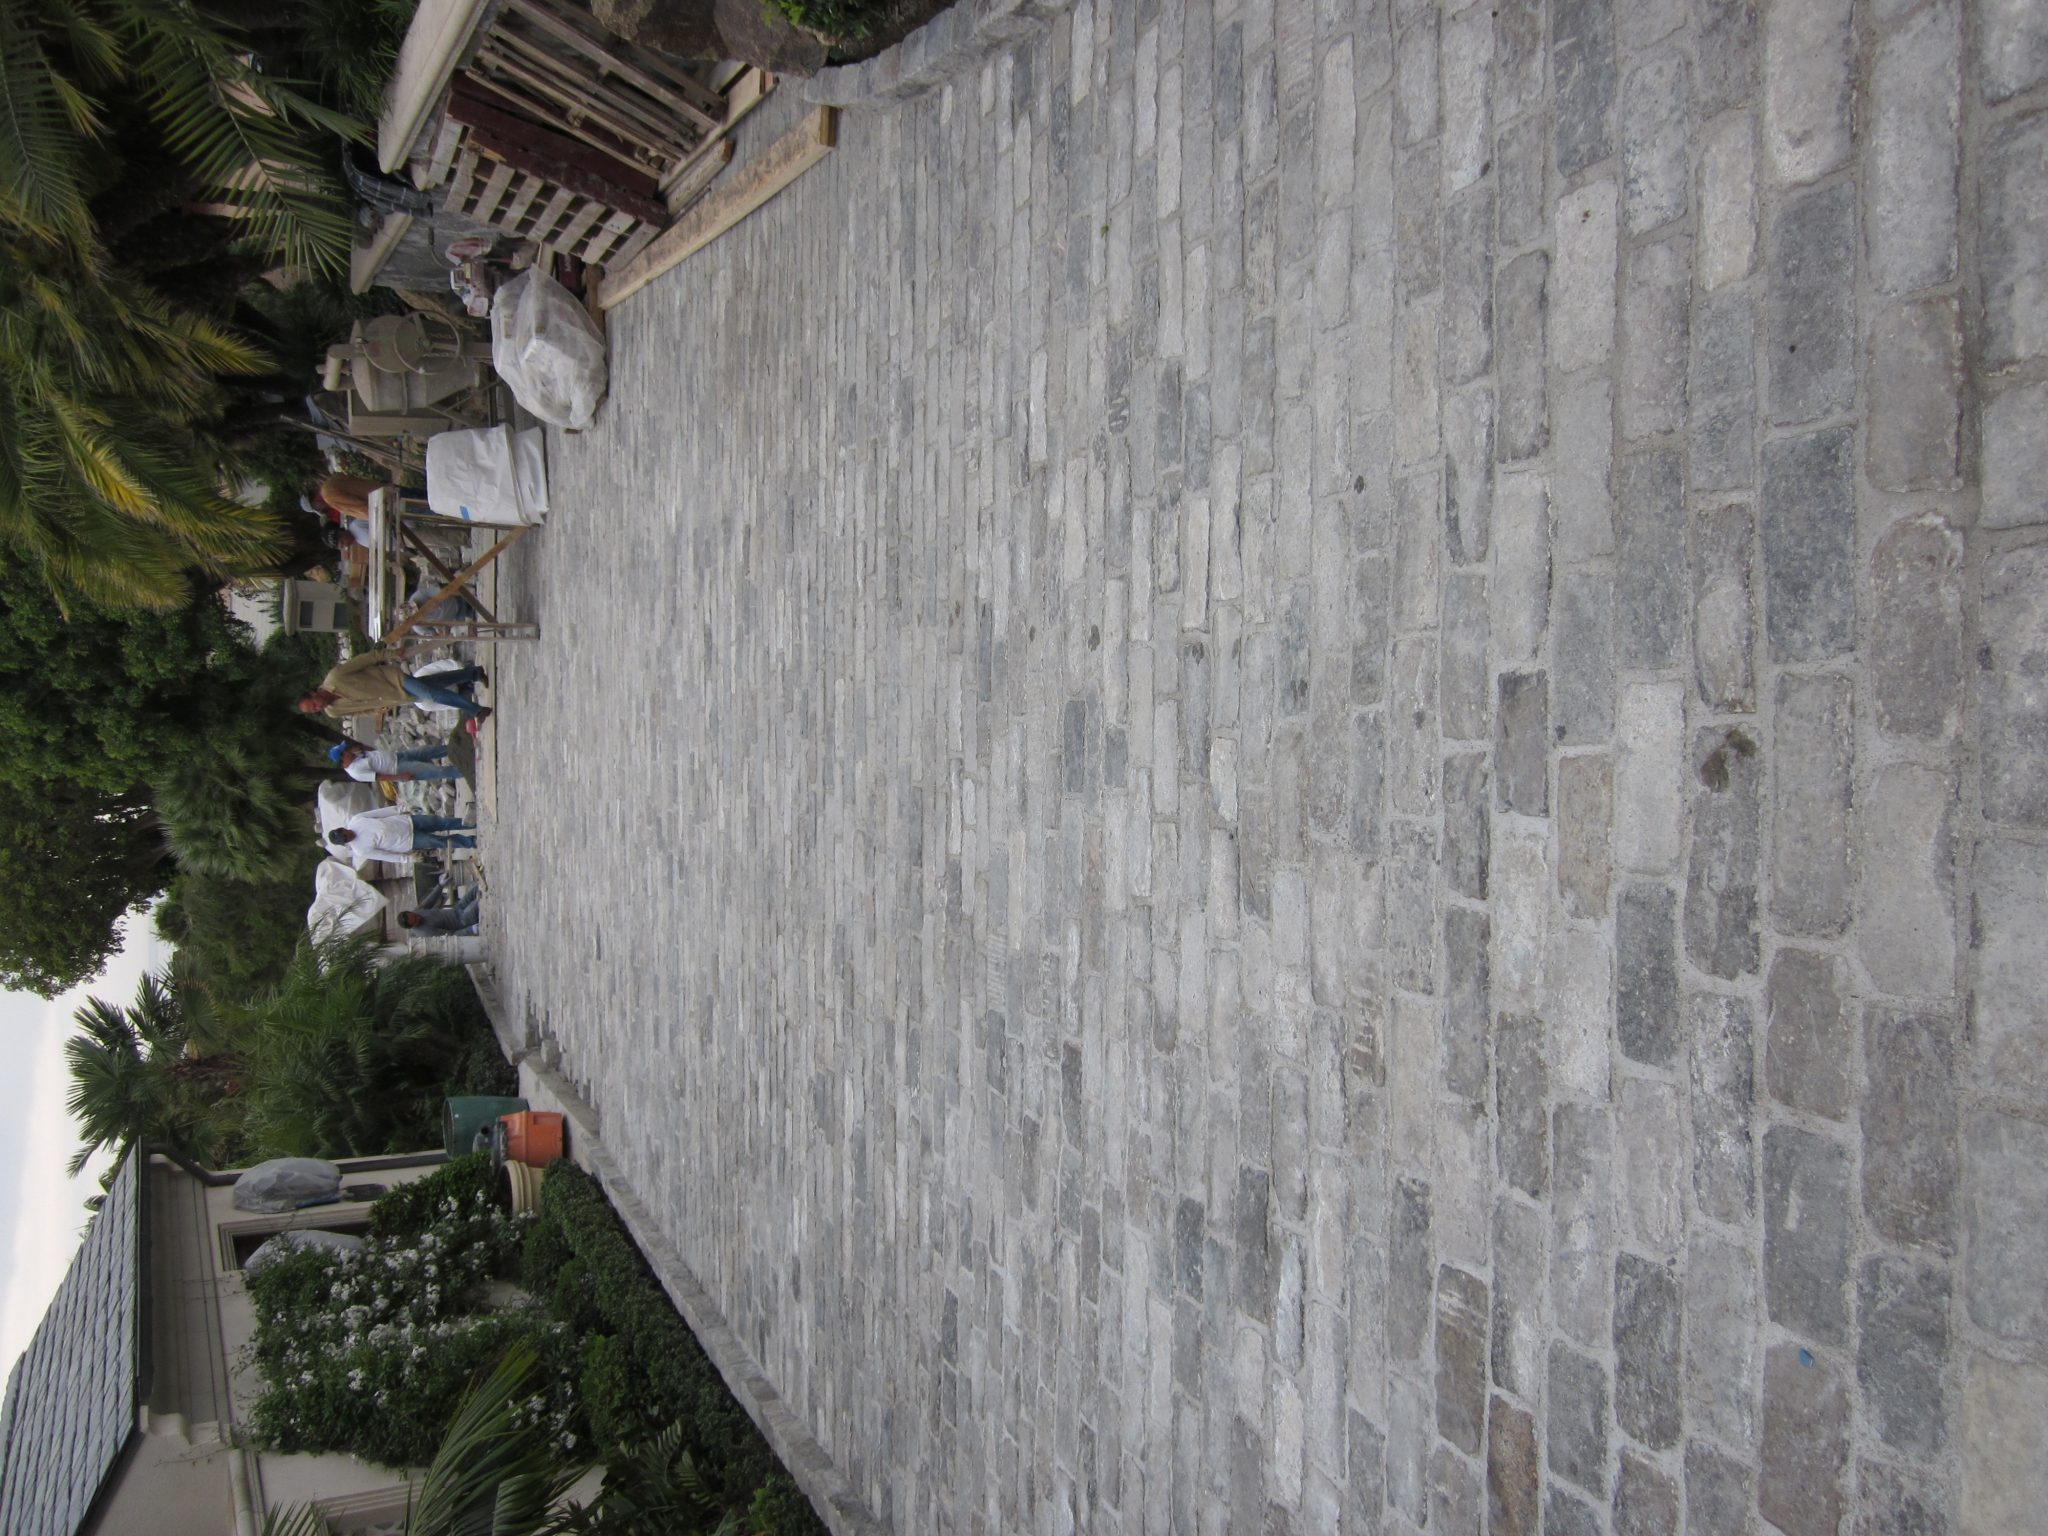 You can view a Salt and Pepper paved street with people at the very end.